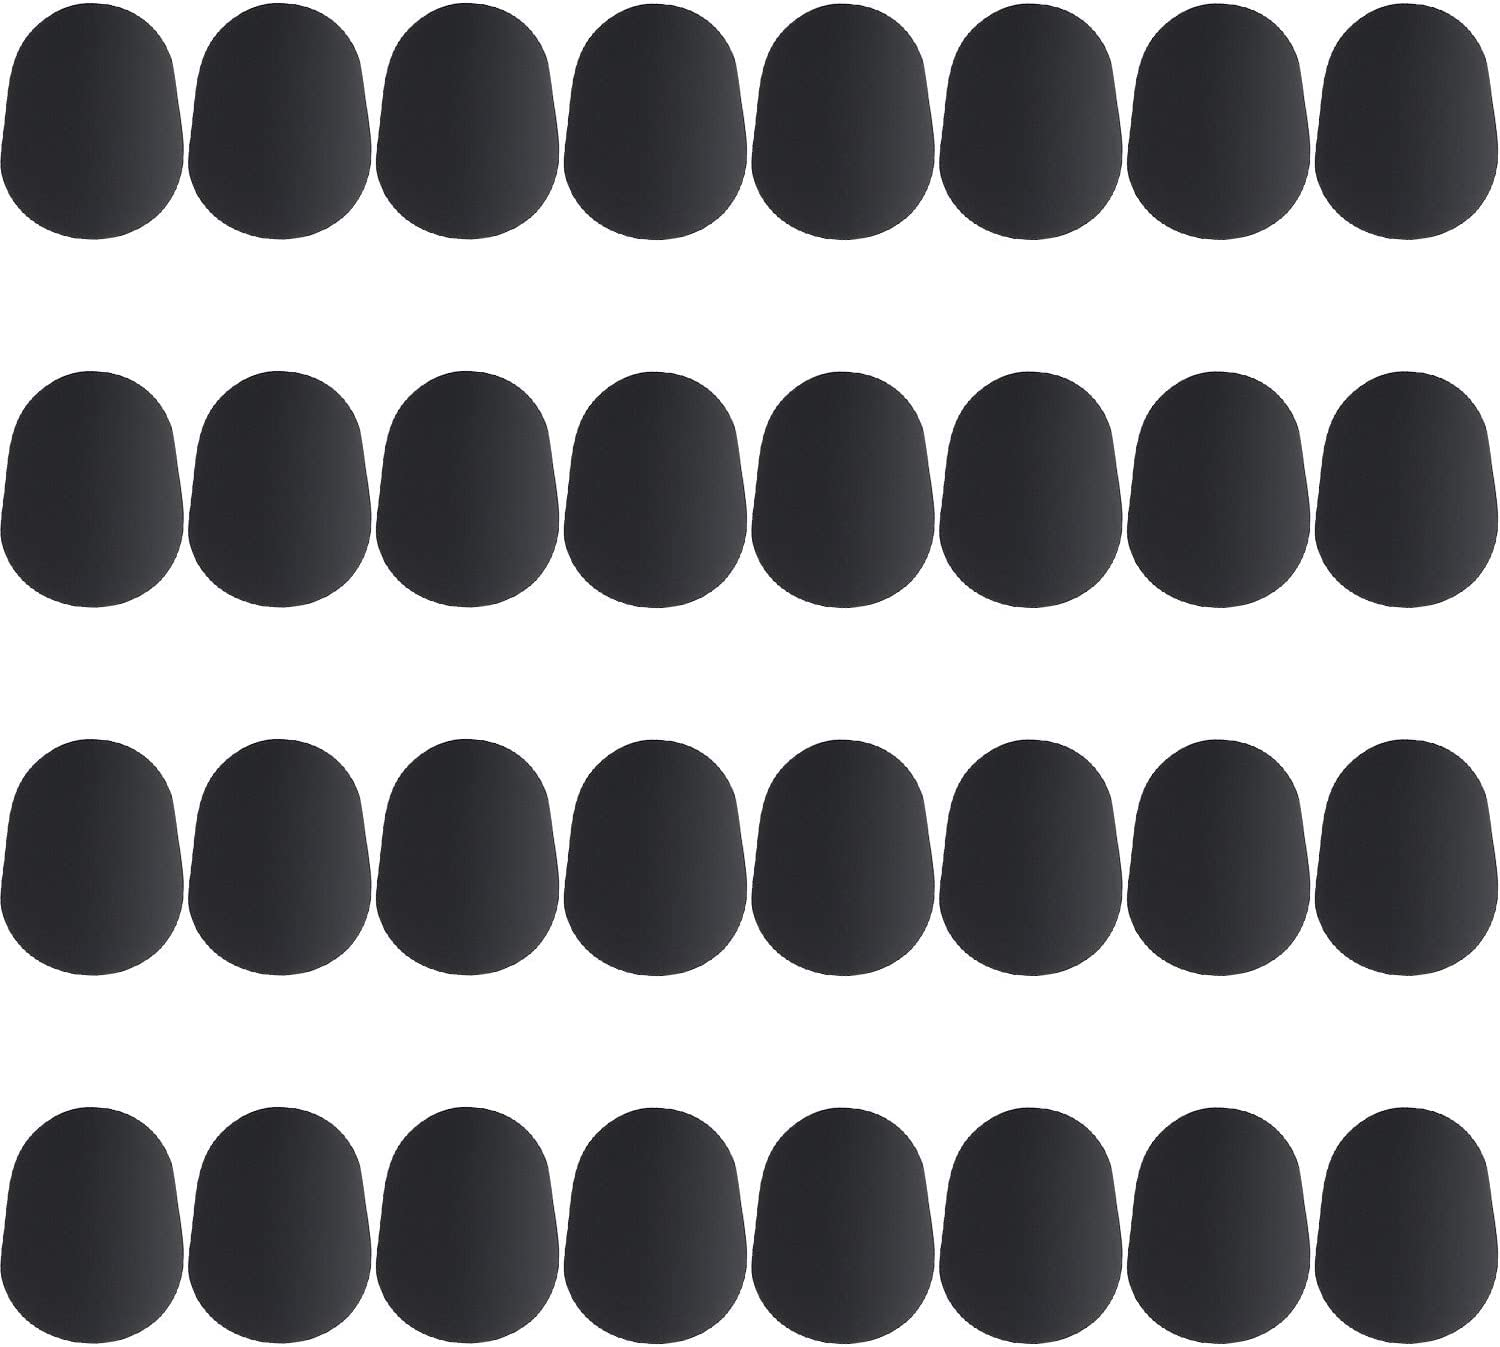 Boao 32 Pieces Mouthpiece Direct store Cushion Patches Very popular 0.8 for mm